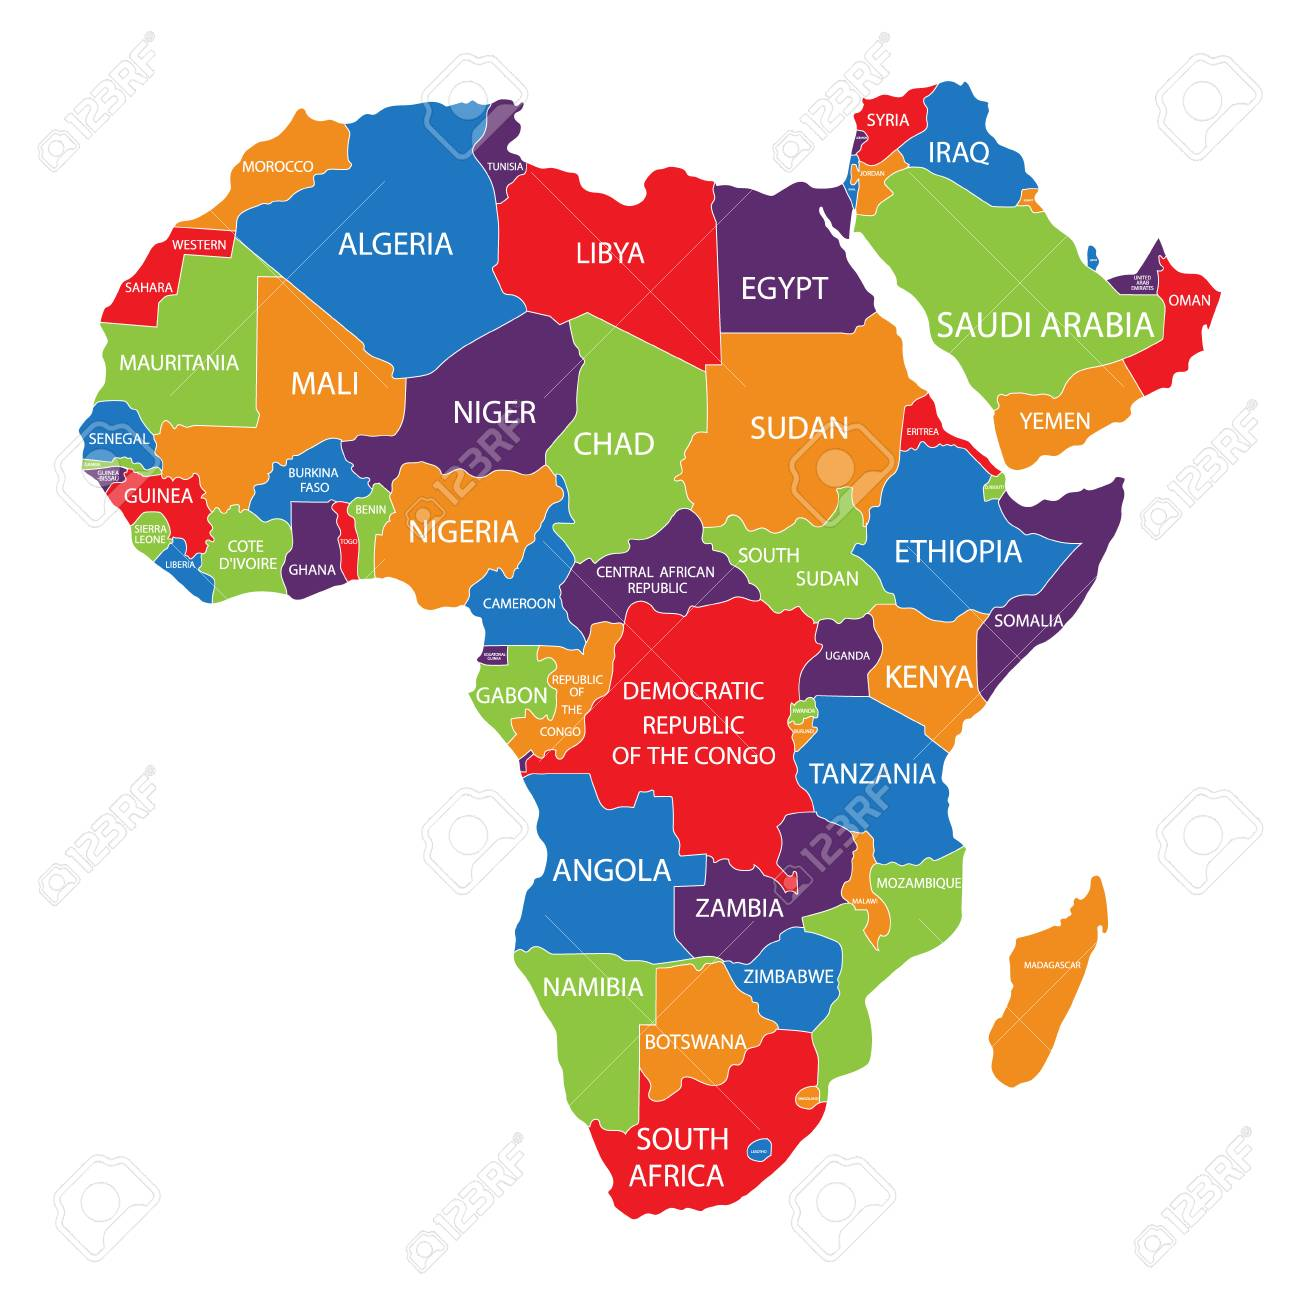 Raster Illustration Africa Map With Countries Names Isolated Stock